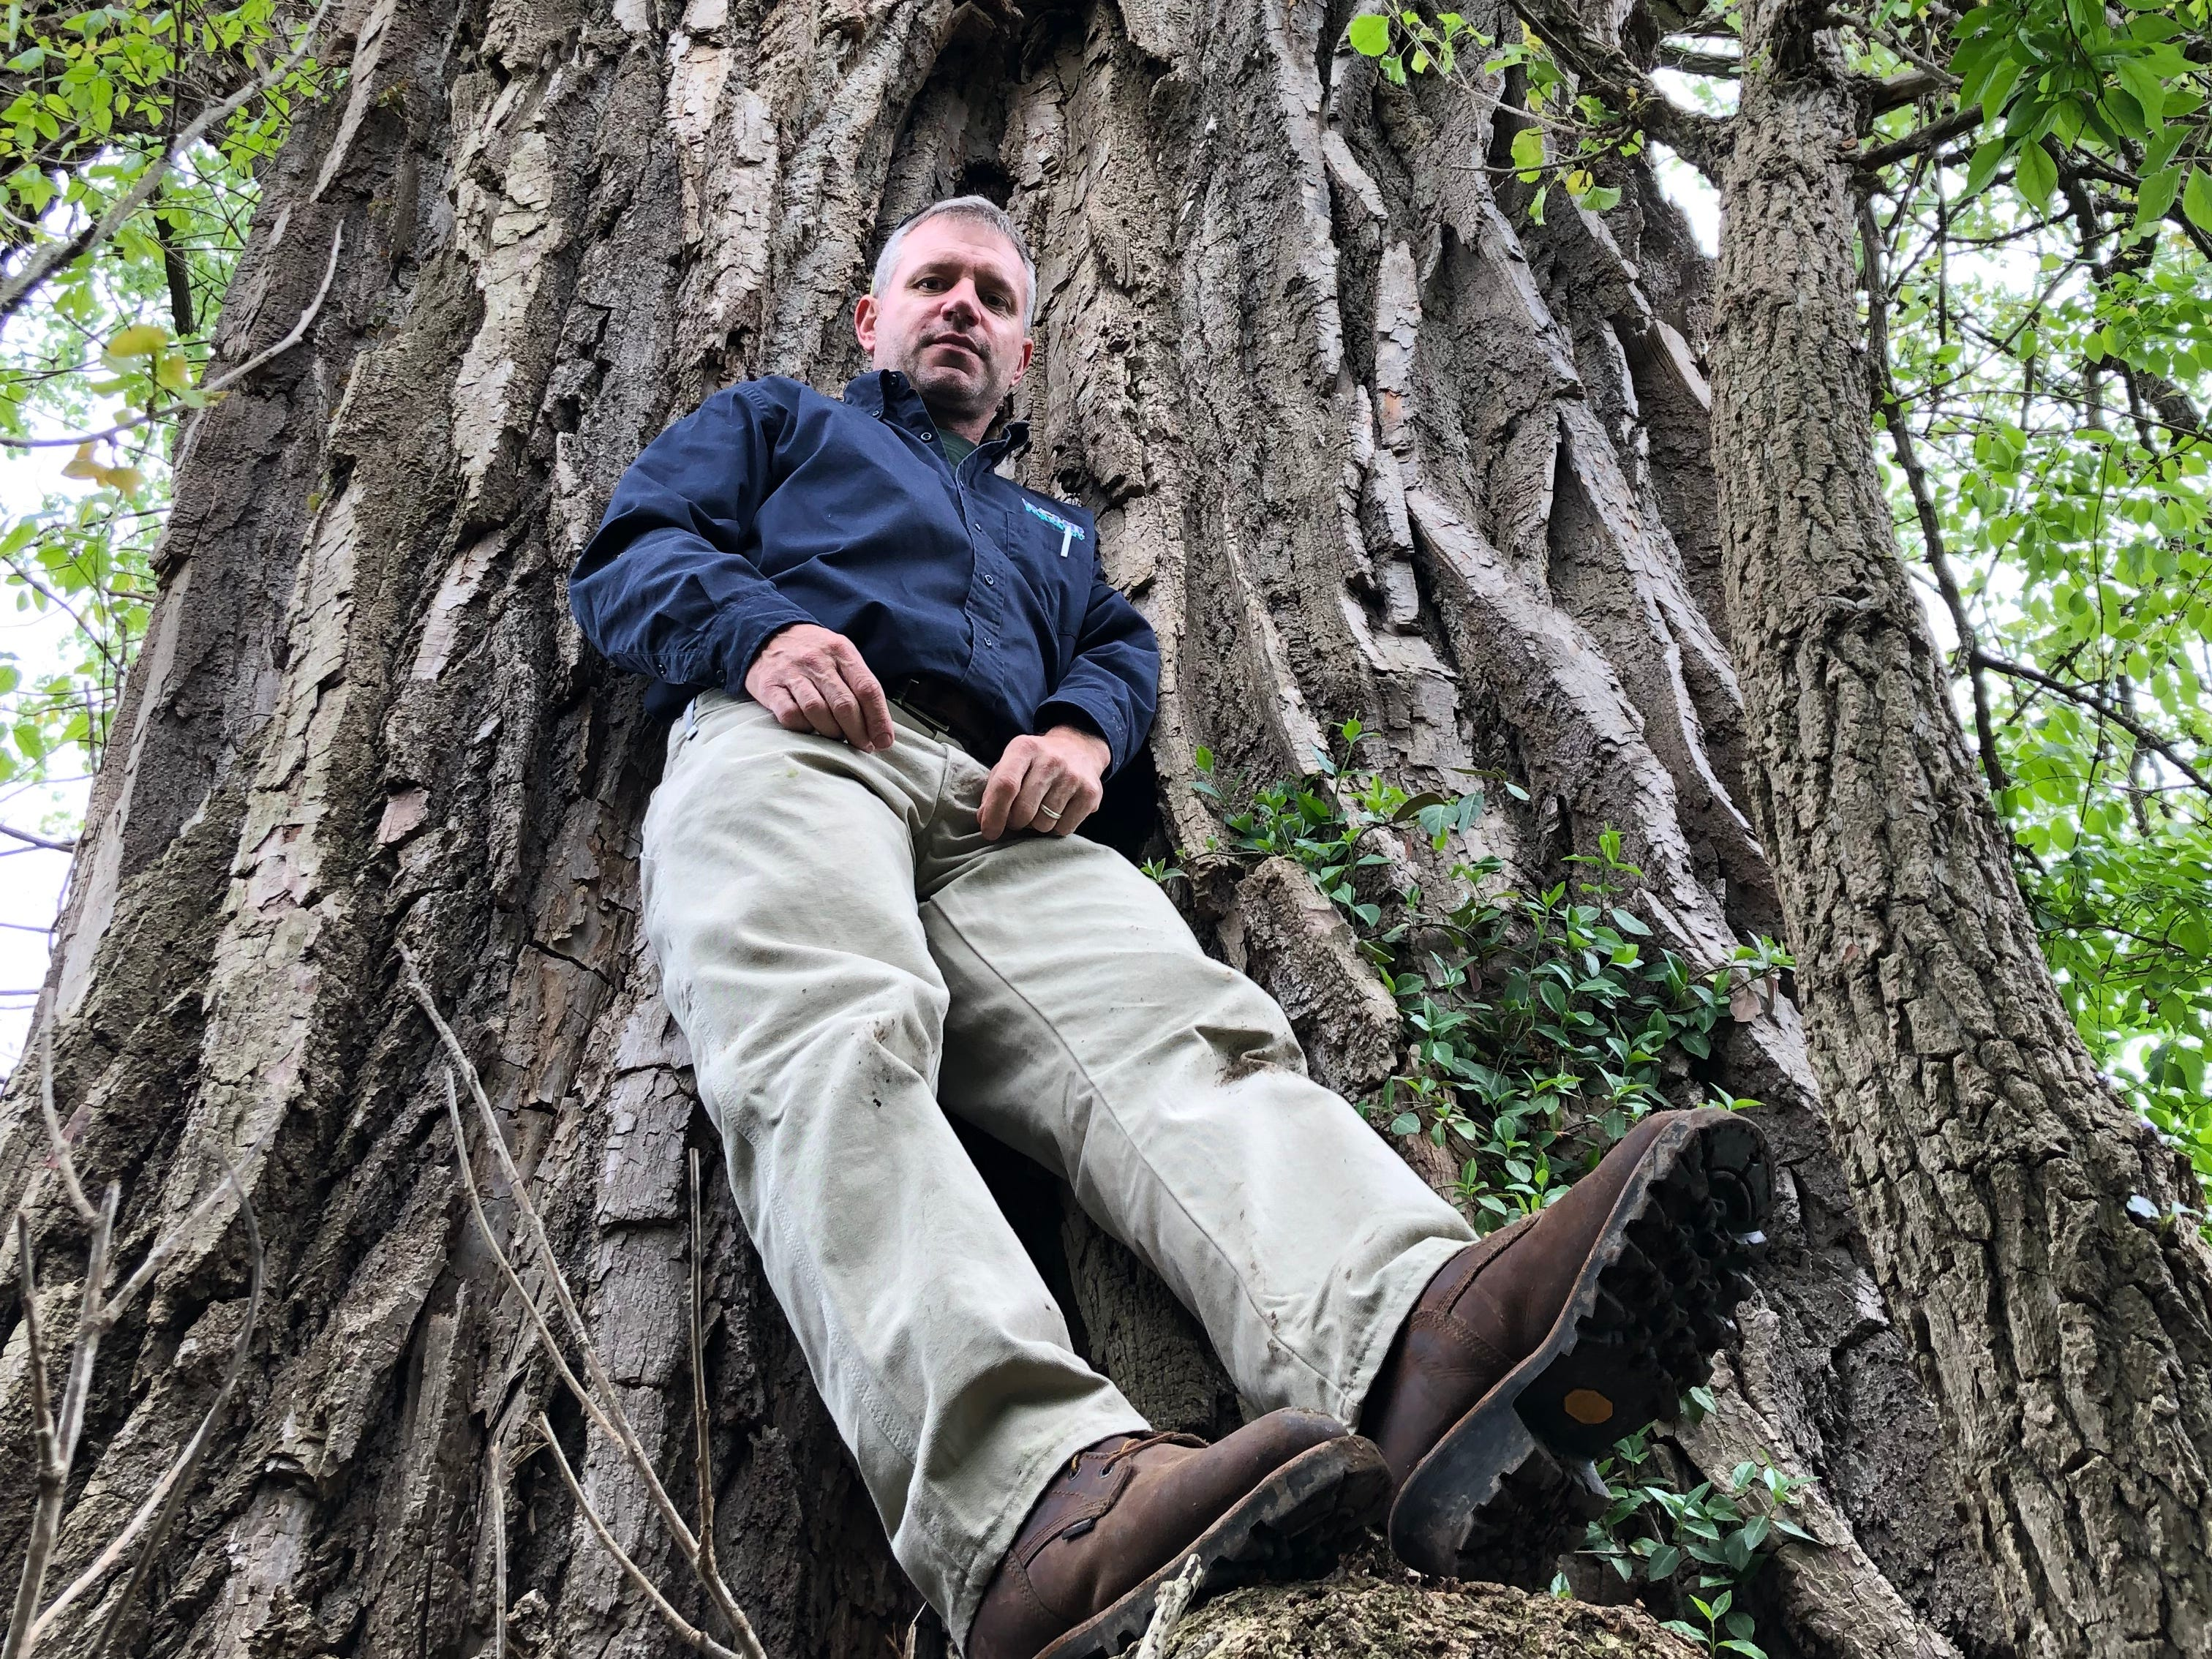 Matt Kern, a forester with the PA Department of Conservation and Natural Resources, poses against the largest tree in York County. The nearly 100-foot high eastern cottonwood features limbs that are 30- to 40-feet long.